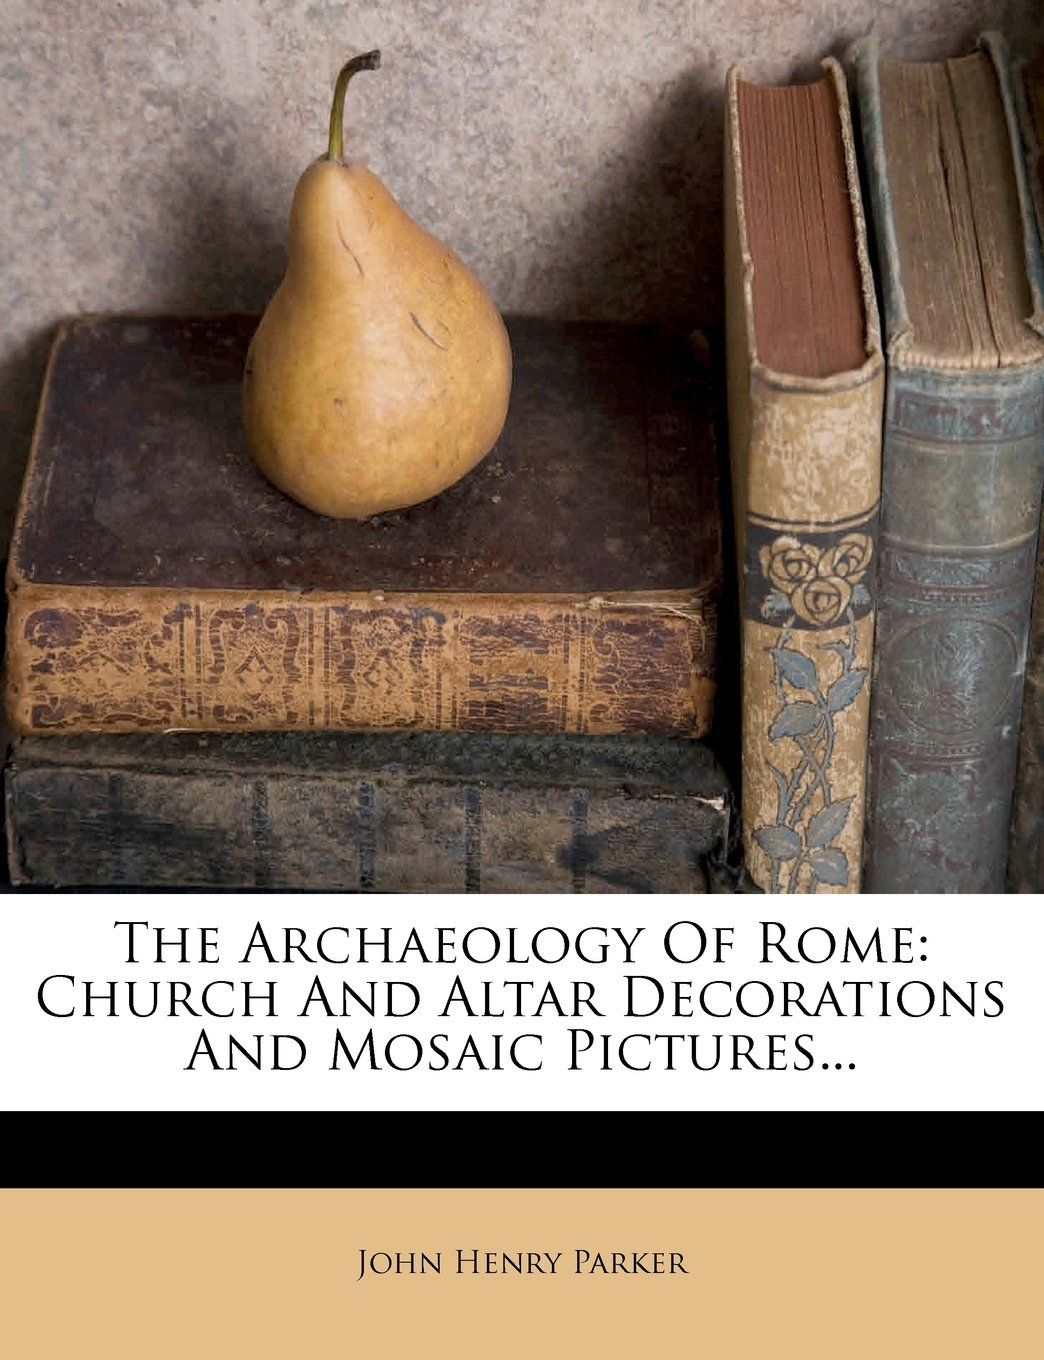 The Archaeology Of Rome: Church And Altar Decorations And Mosaic Pictures. pdf